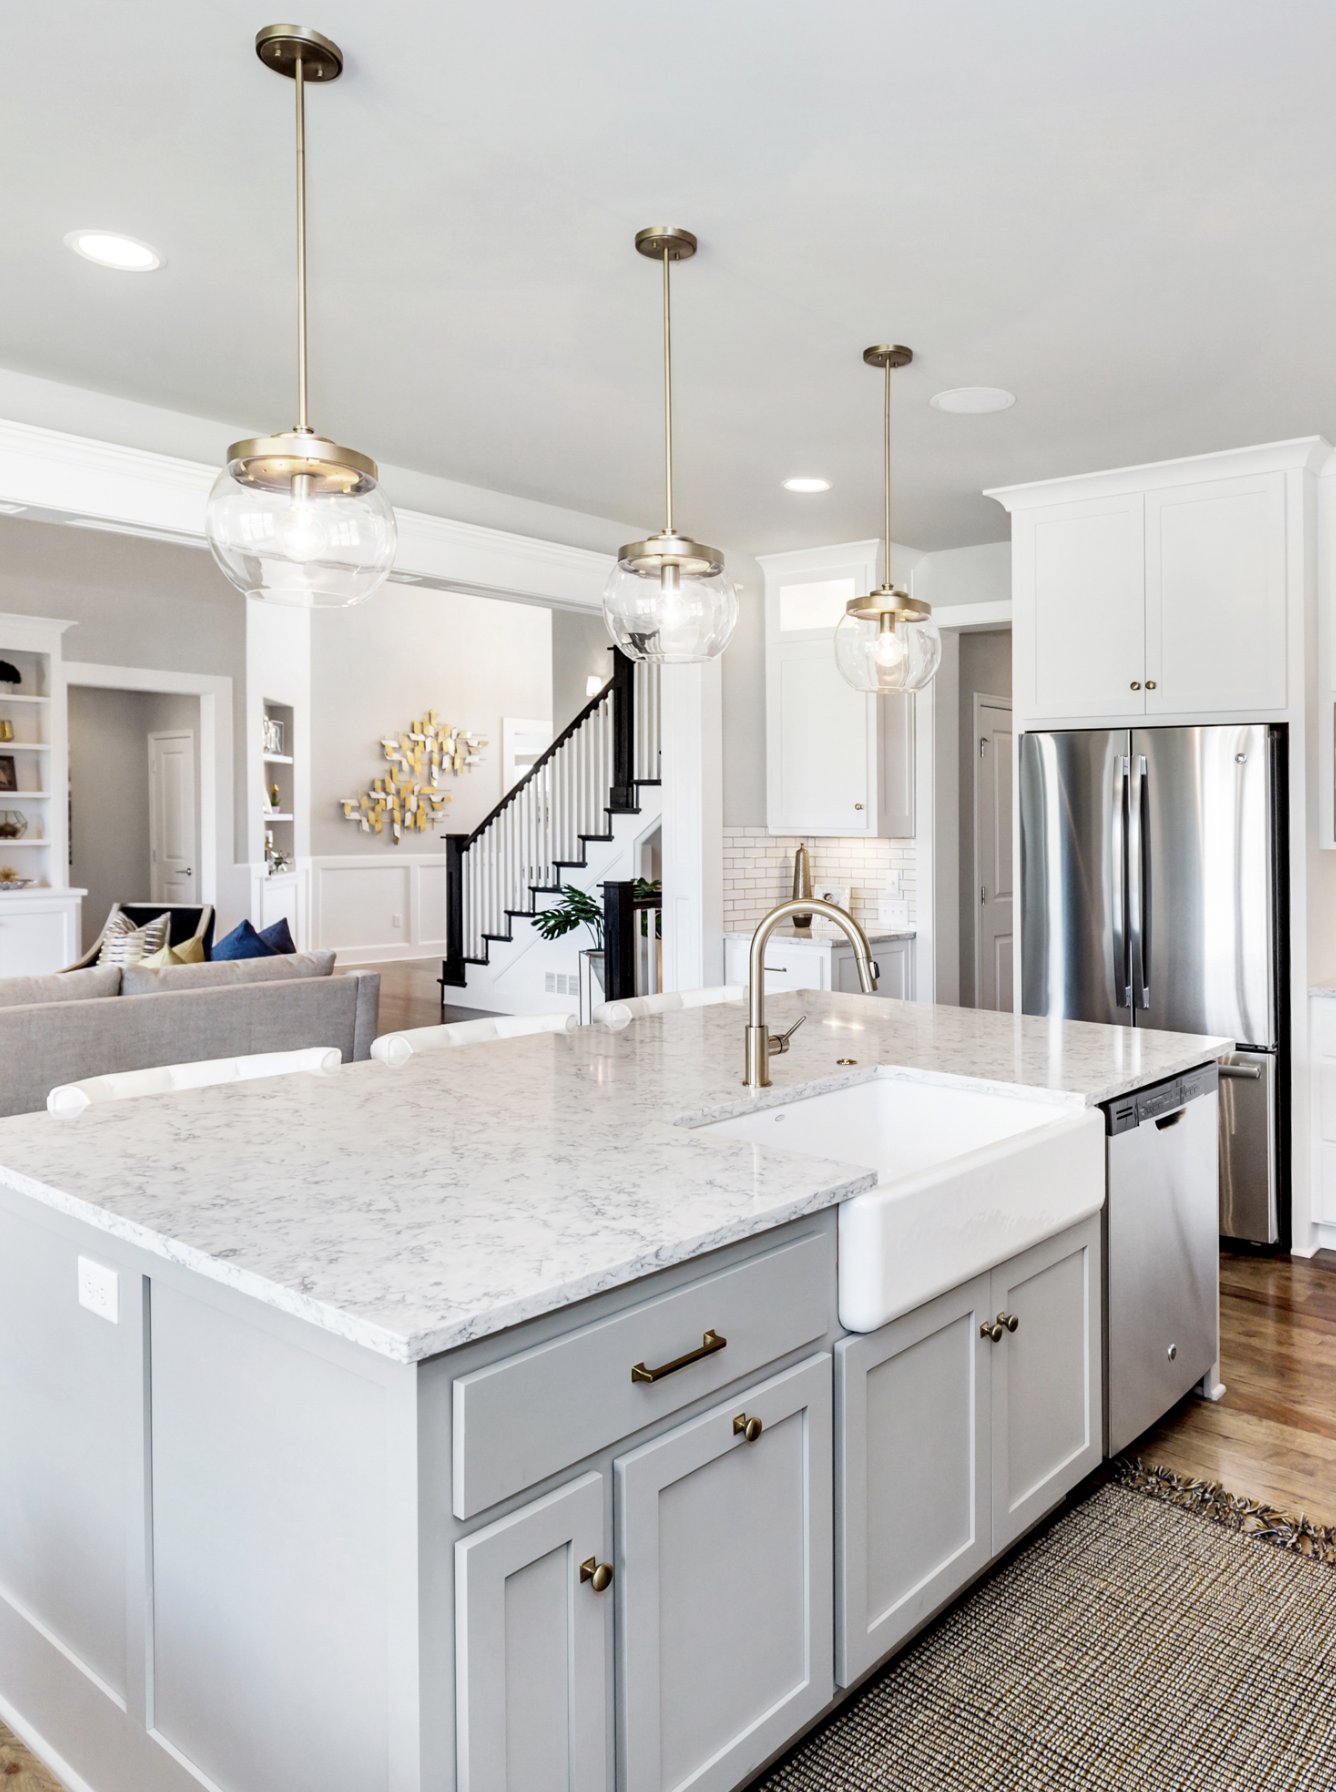 The Carter By Roeser Homes Watersedge Lot 139 3010 W 157th Terr Overland Park Kansas Our Award Winning Carter Model In W Home Home Kitchens Home Upgrades